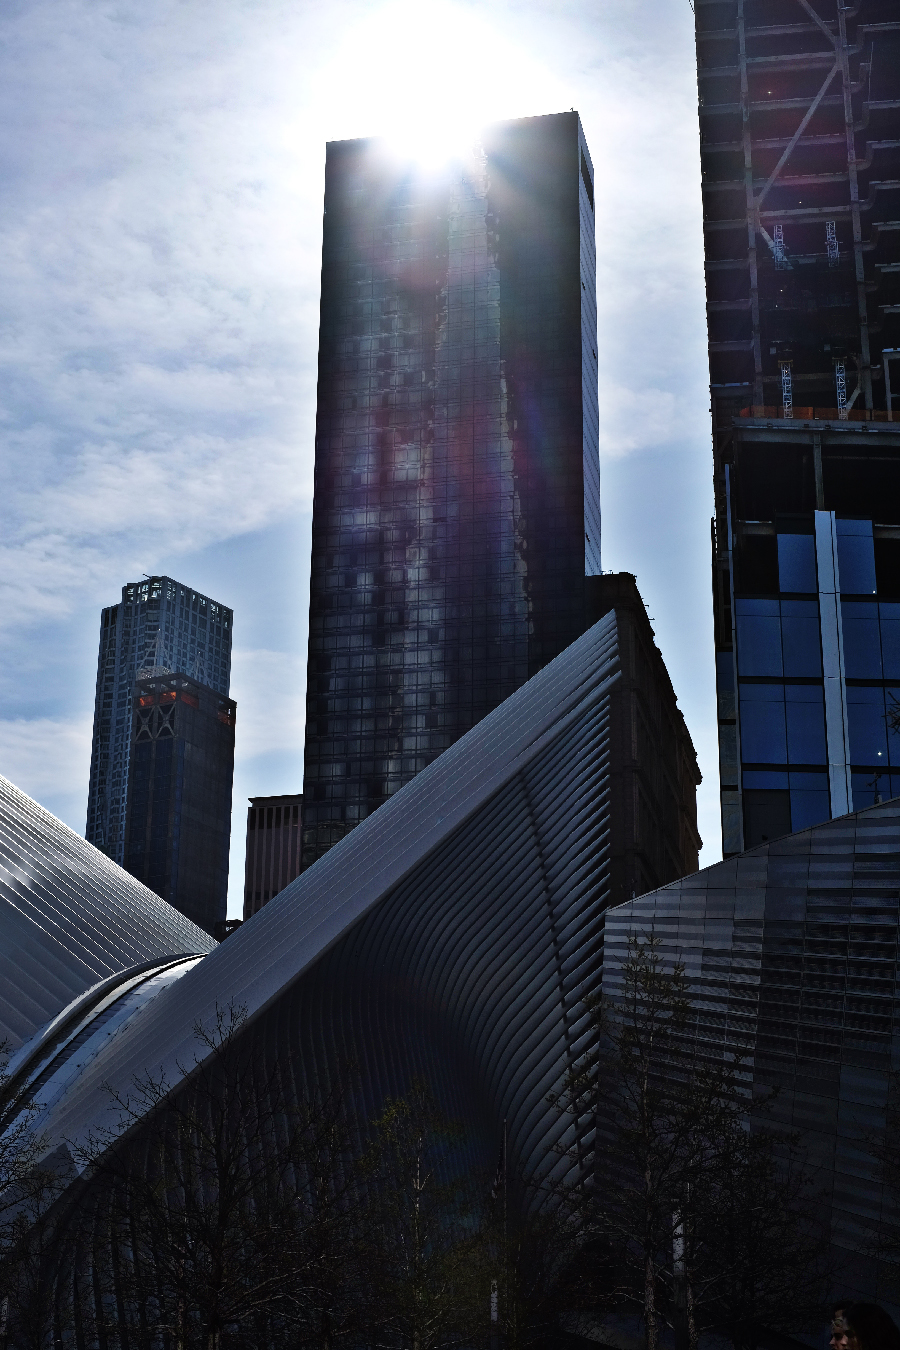 A brief visit to the 9/11 memorial in the financial district revealed aquatic-inspired architecture and a dark time in our nation's recent past.